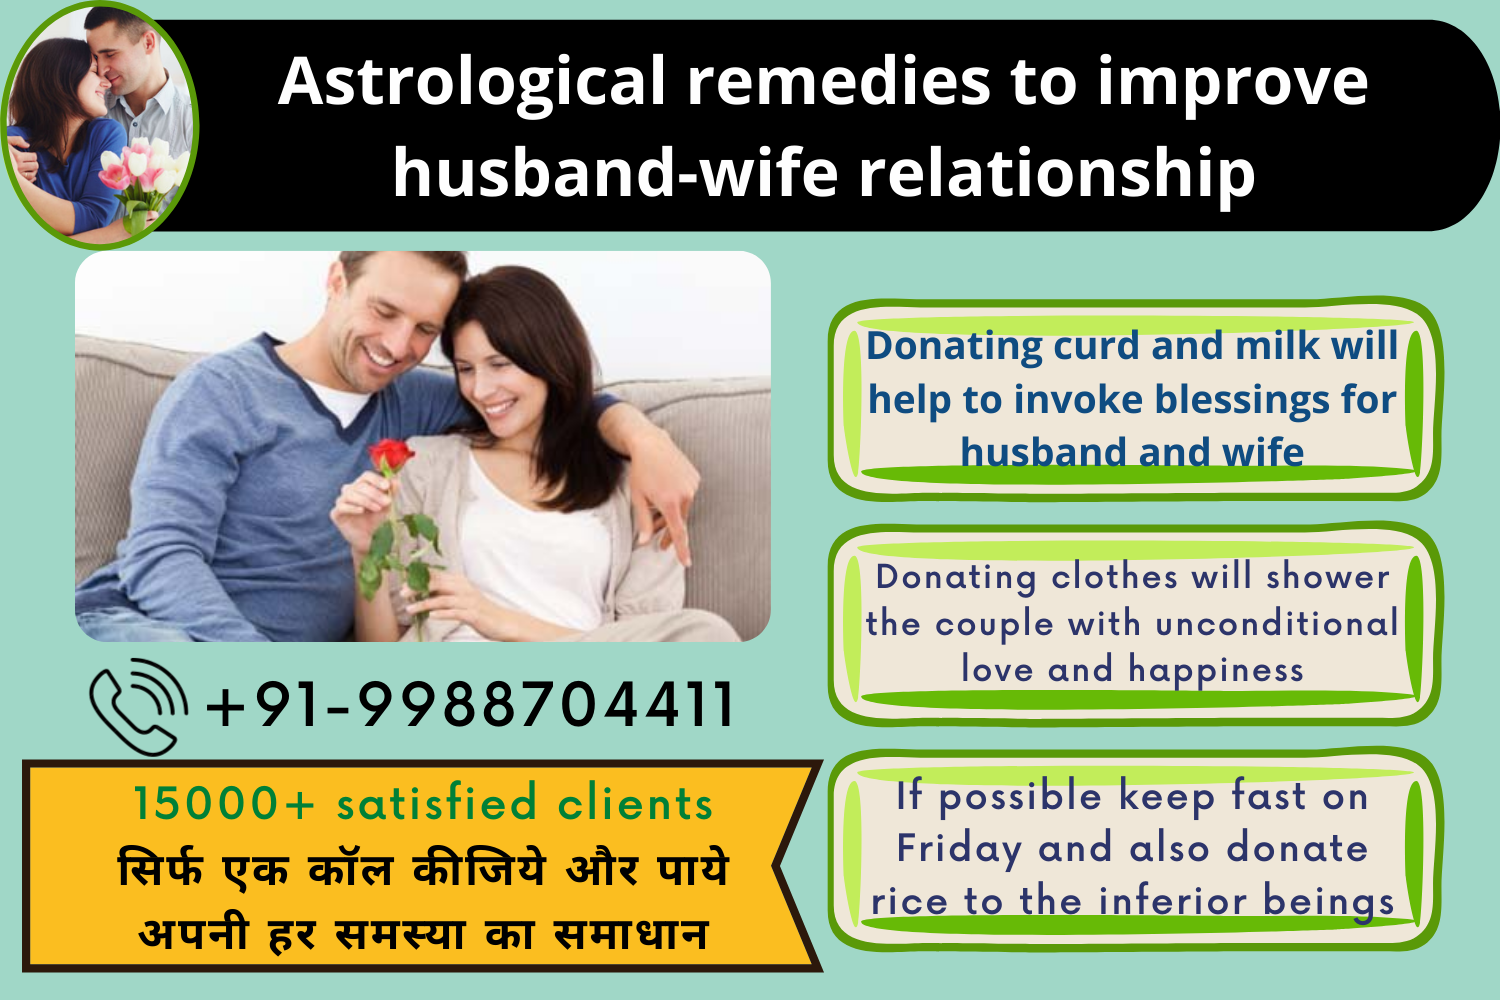 Astrological remedies to improve husband-wife relationship